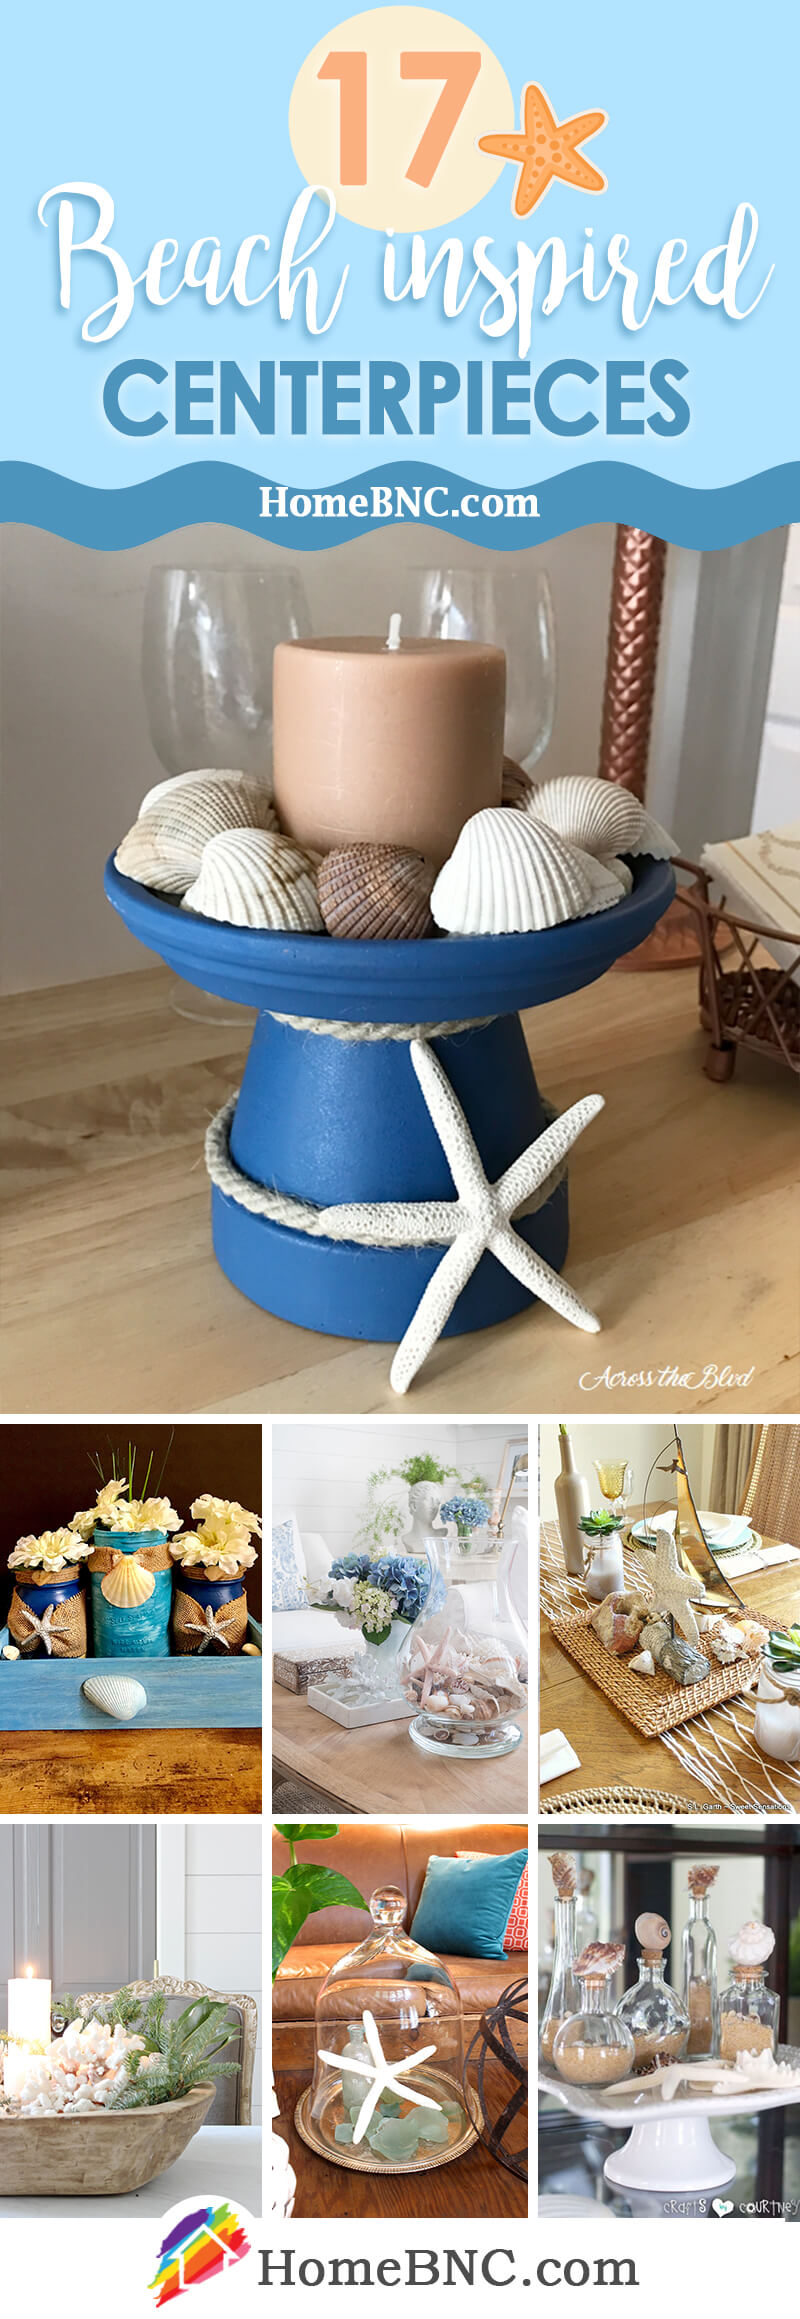 Beach Themed Centerpiece Ideas